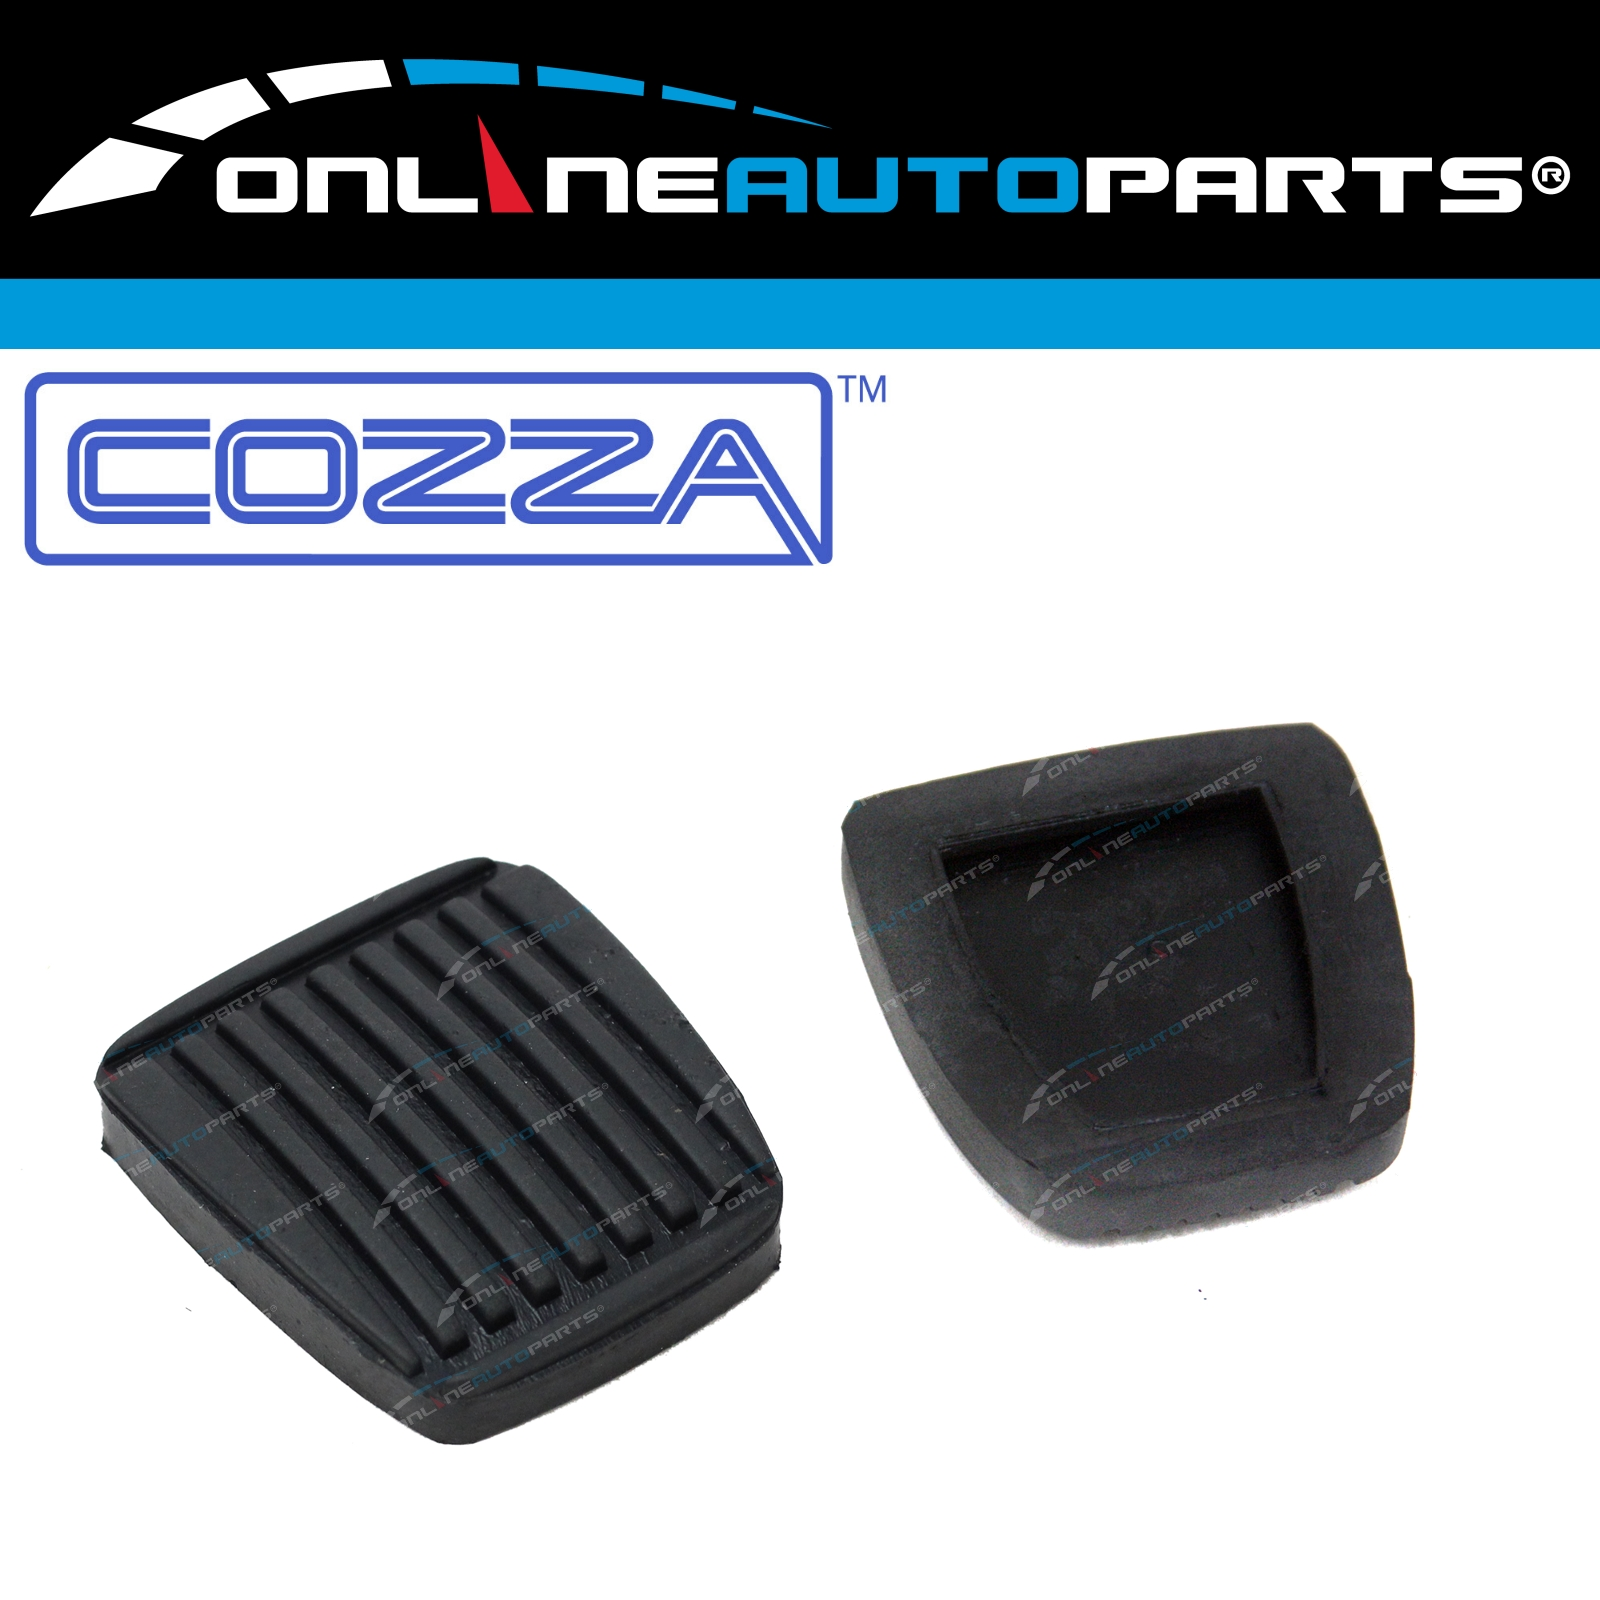 Brake or clutch pedal rubber 31321-14020A to suit Toyota Landcruiser 75 78 79#